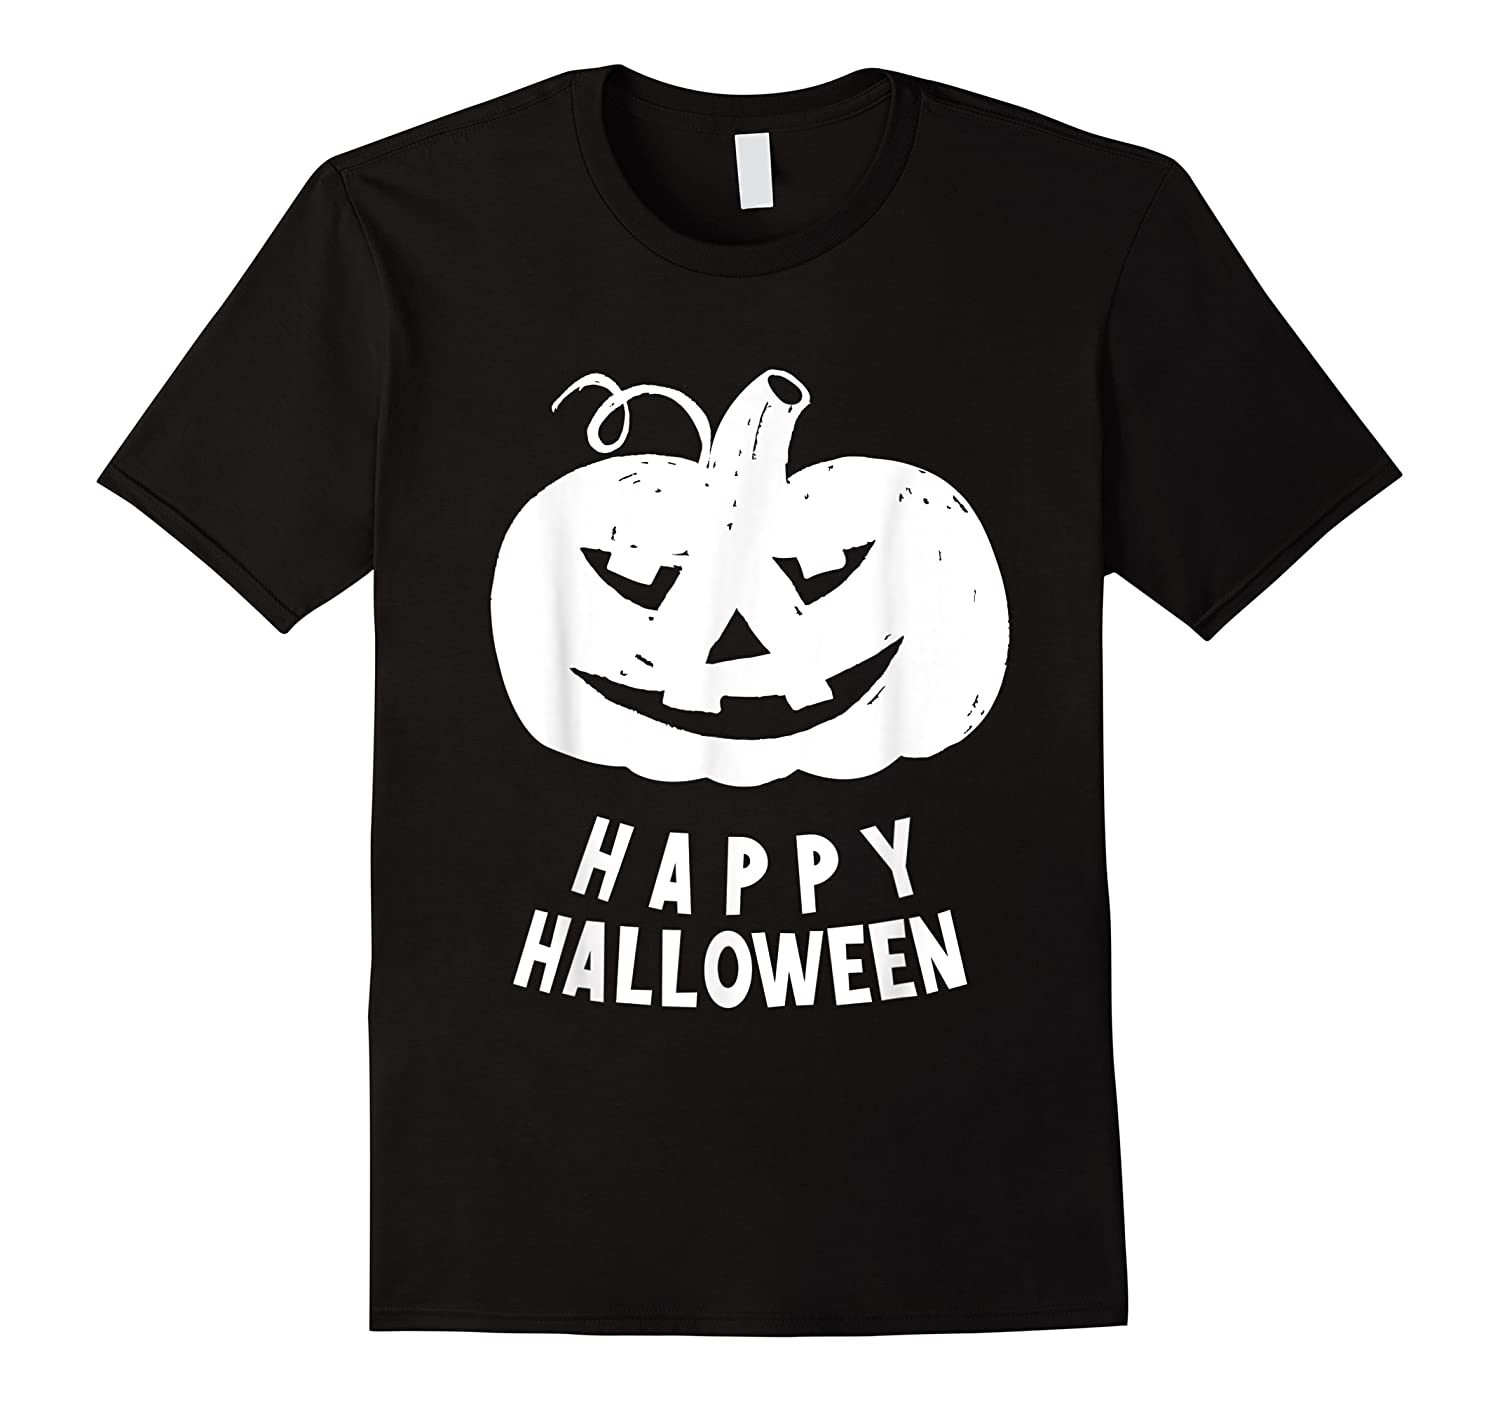 Funny Happy Halloween Costumes Scary Spooky Pumpkin Costume Shirts